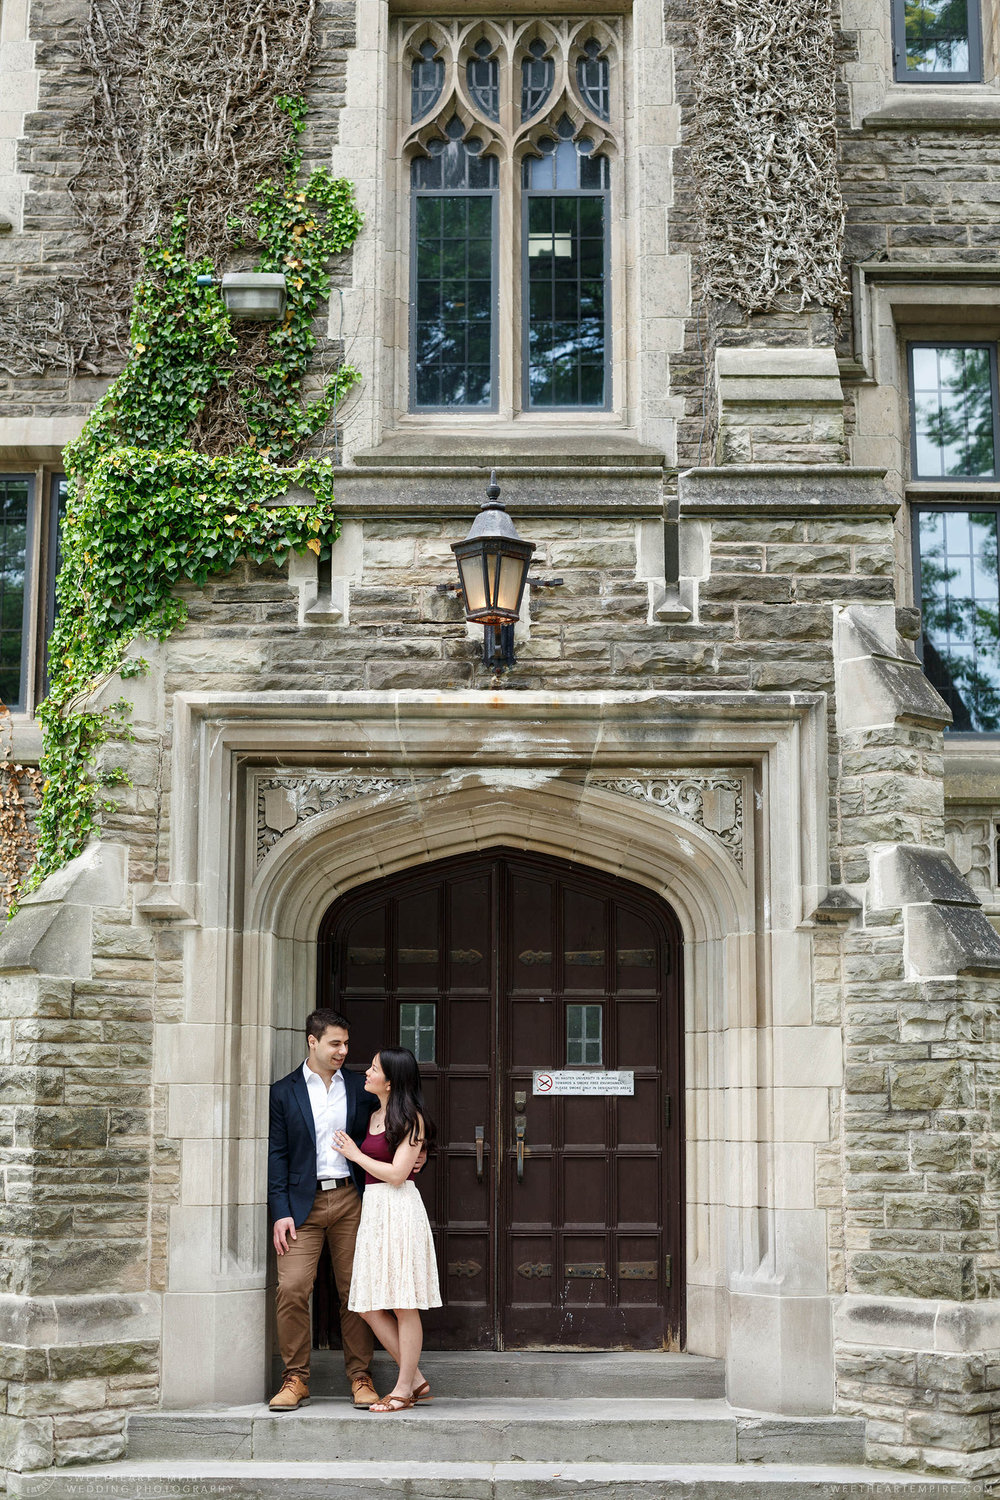 Couple standing together in doorway of building at McMaster University, McMaster University Engagement Session